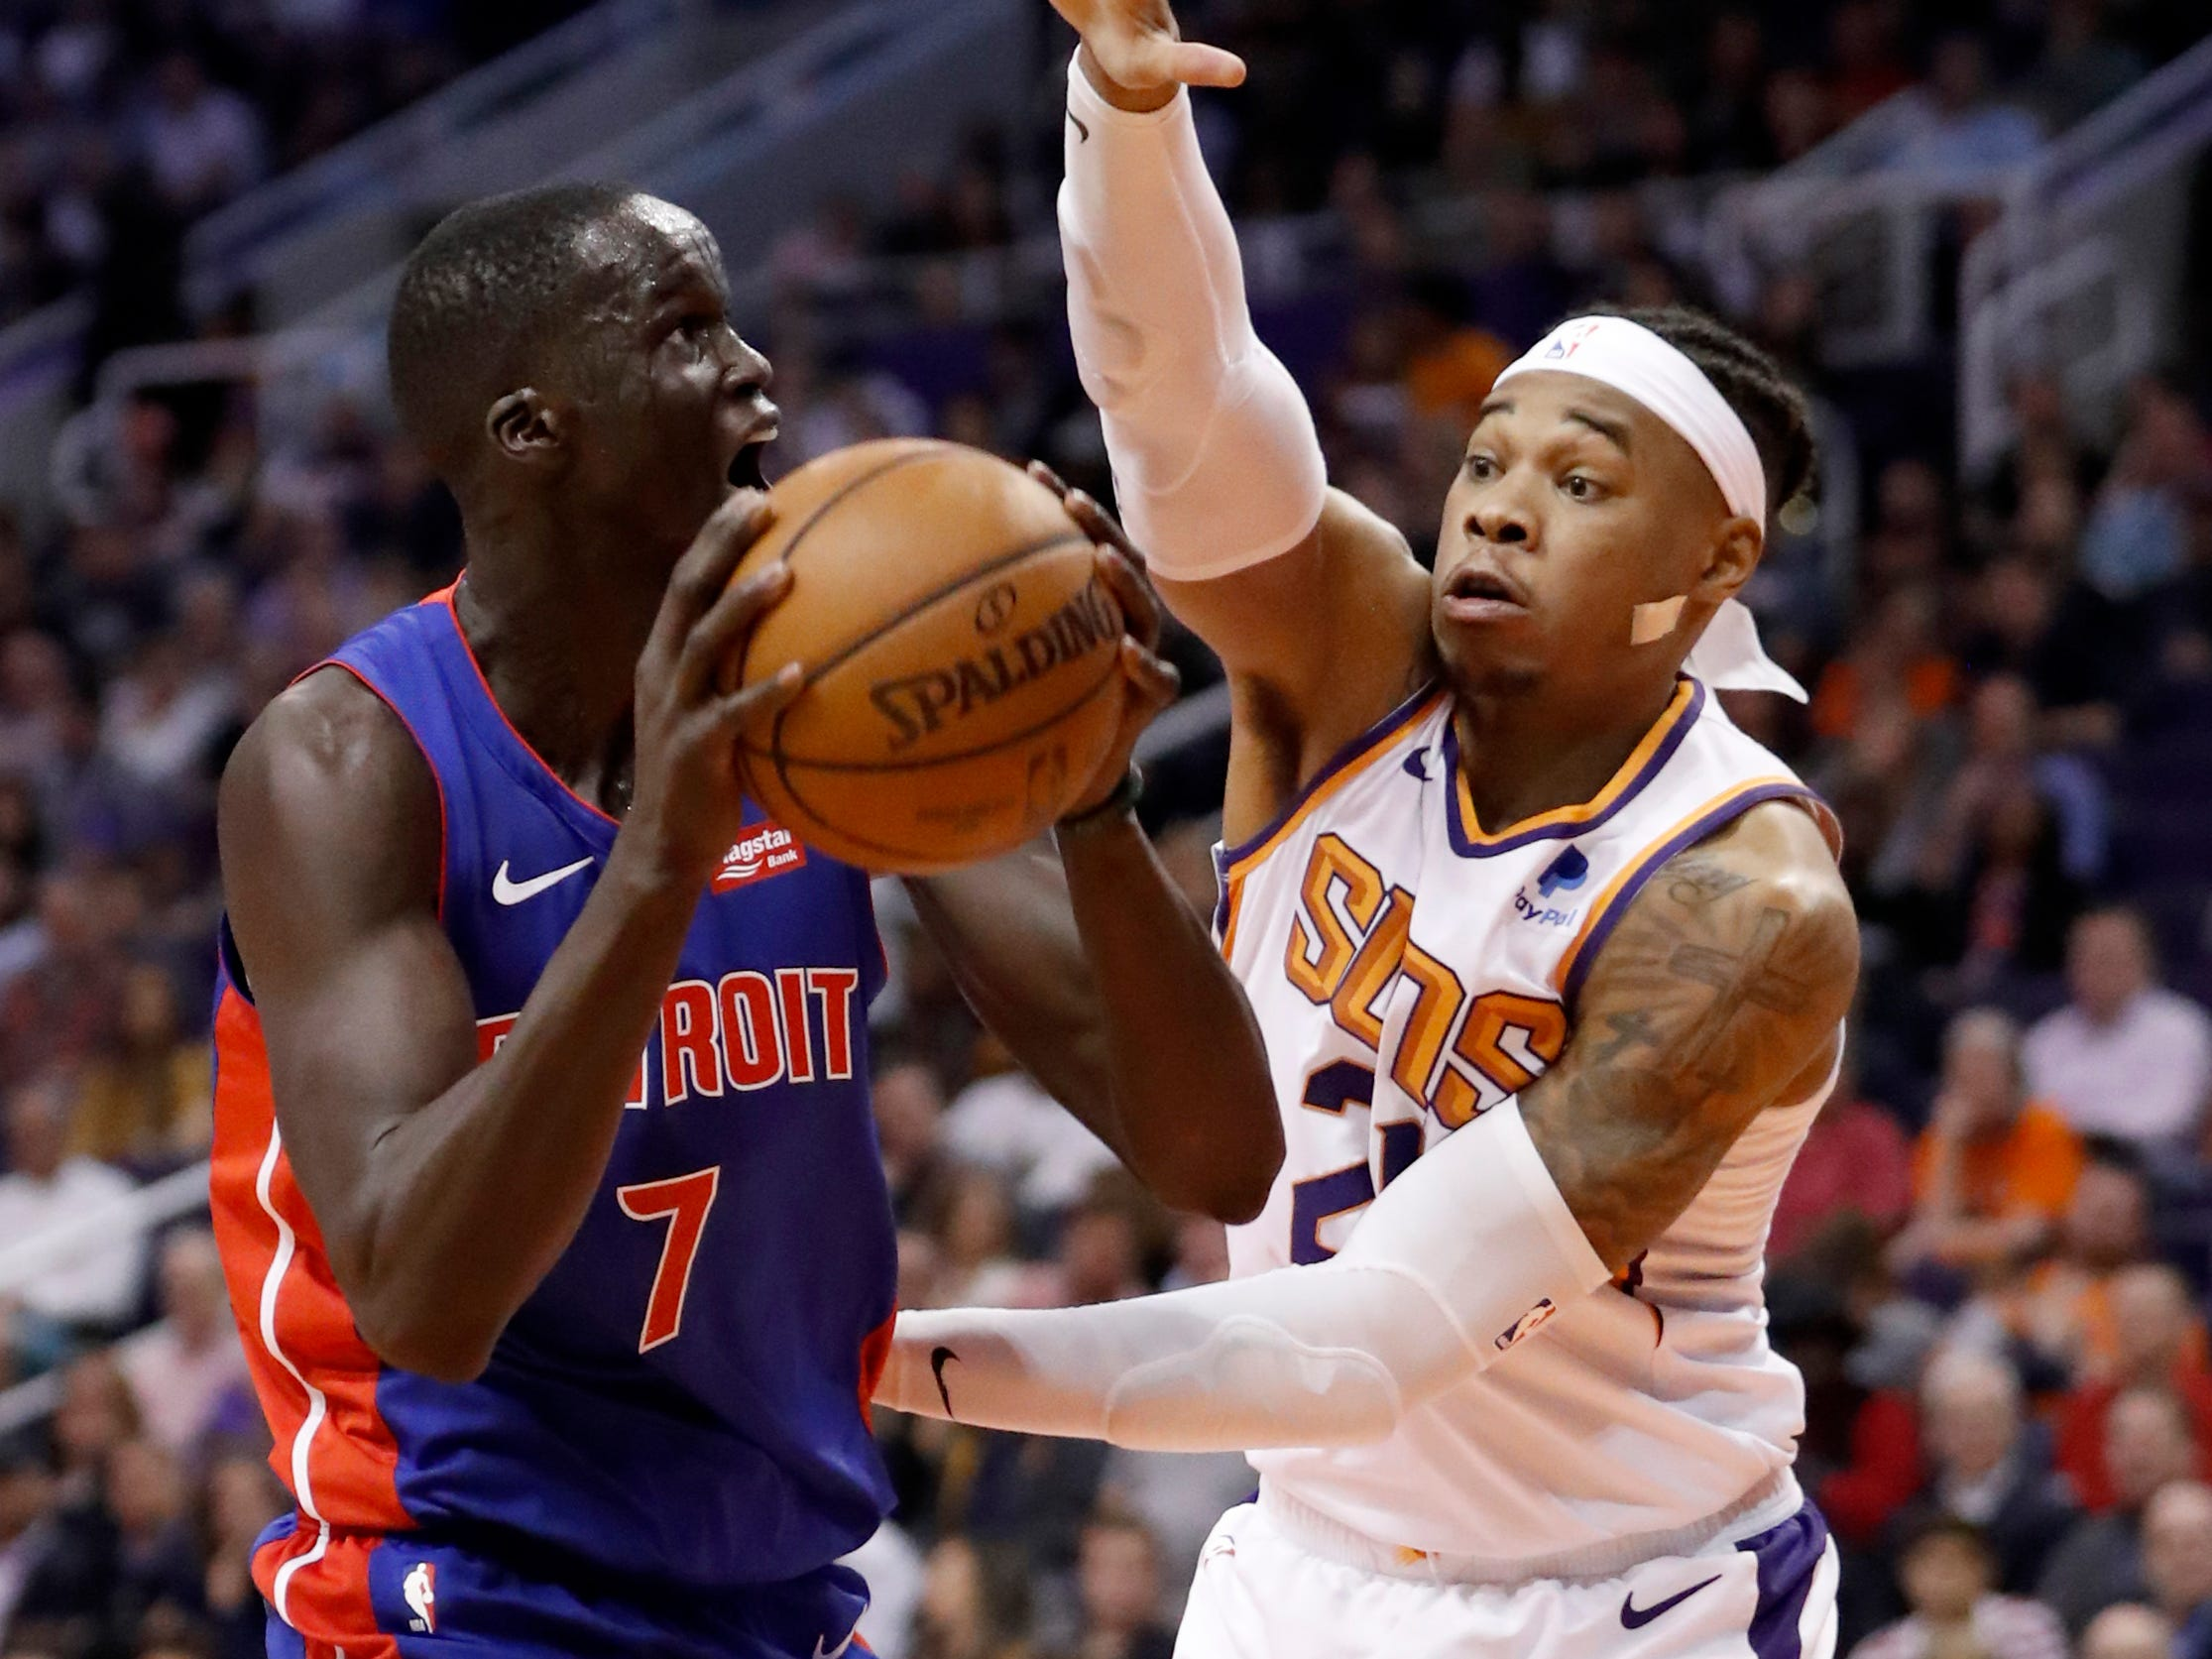 Detroit Pistons forward Thon Maker (7) prepares to shoot as Phoenix Suns forward Richaun Holmes defends during the first half of an NBA basketball game Thursday, March 21, 2019, in Phoenix.